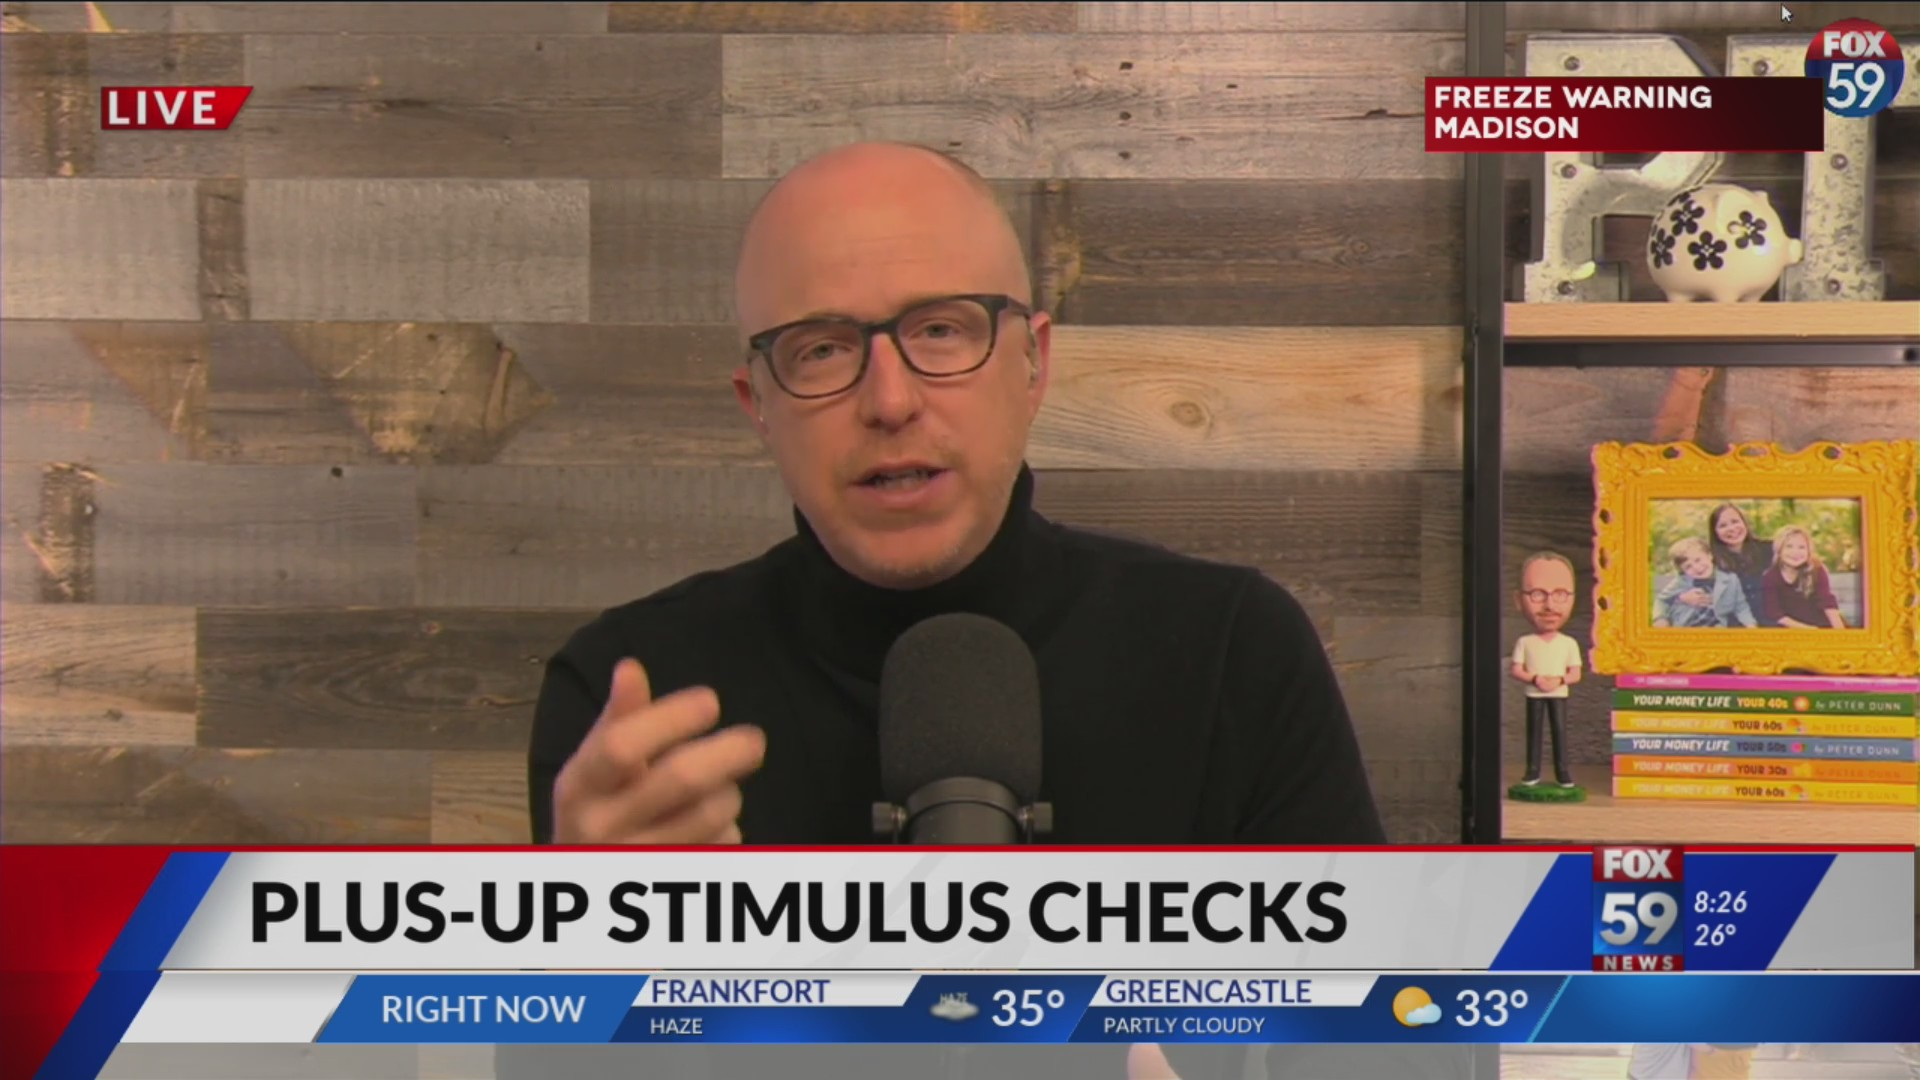 Extra stimulus checks: What are plus-up payments?